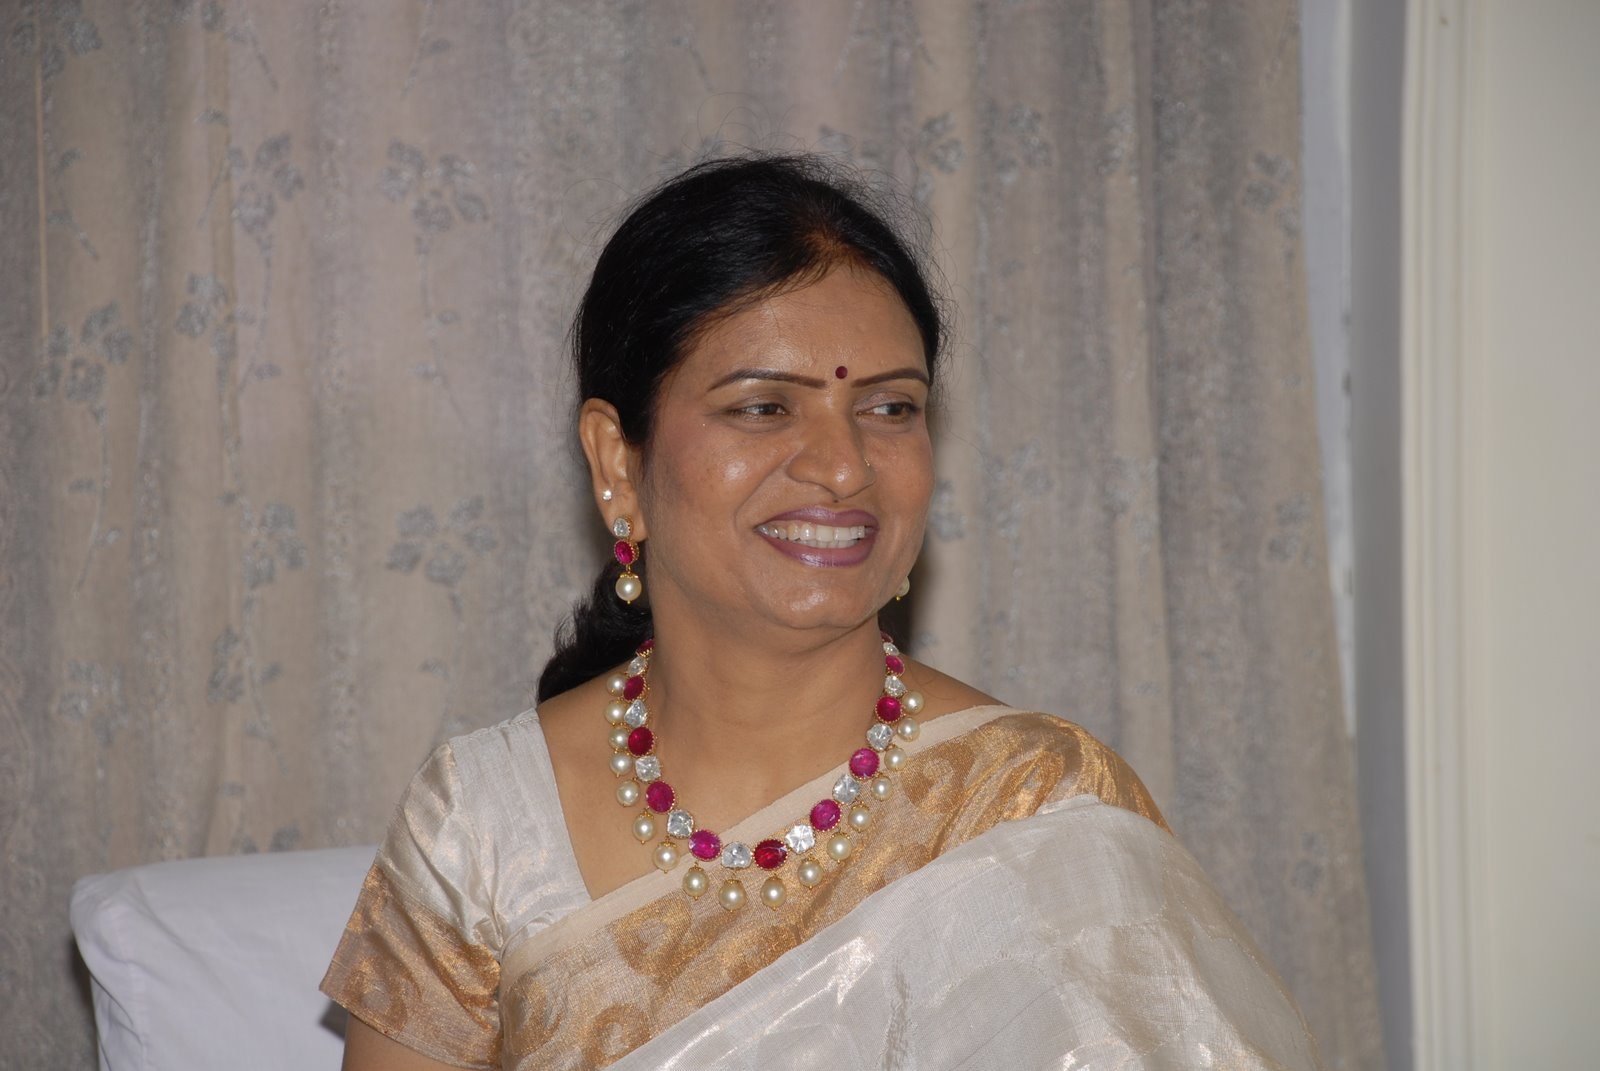 Indian Jewellery and Clothing: Minister D.K.Aruna in